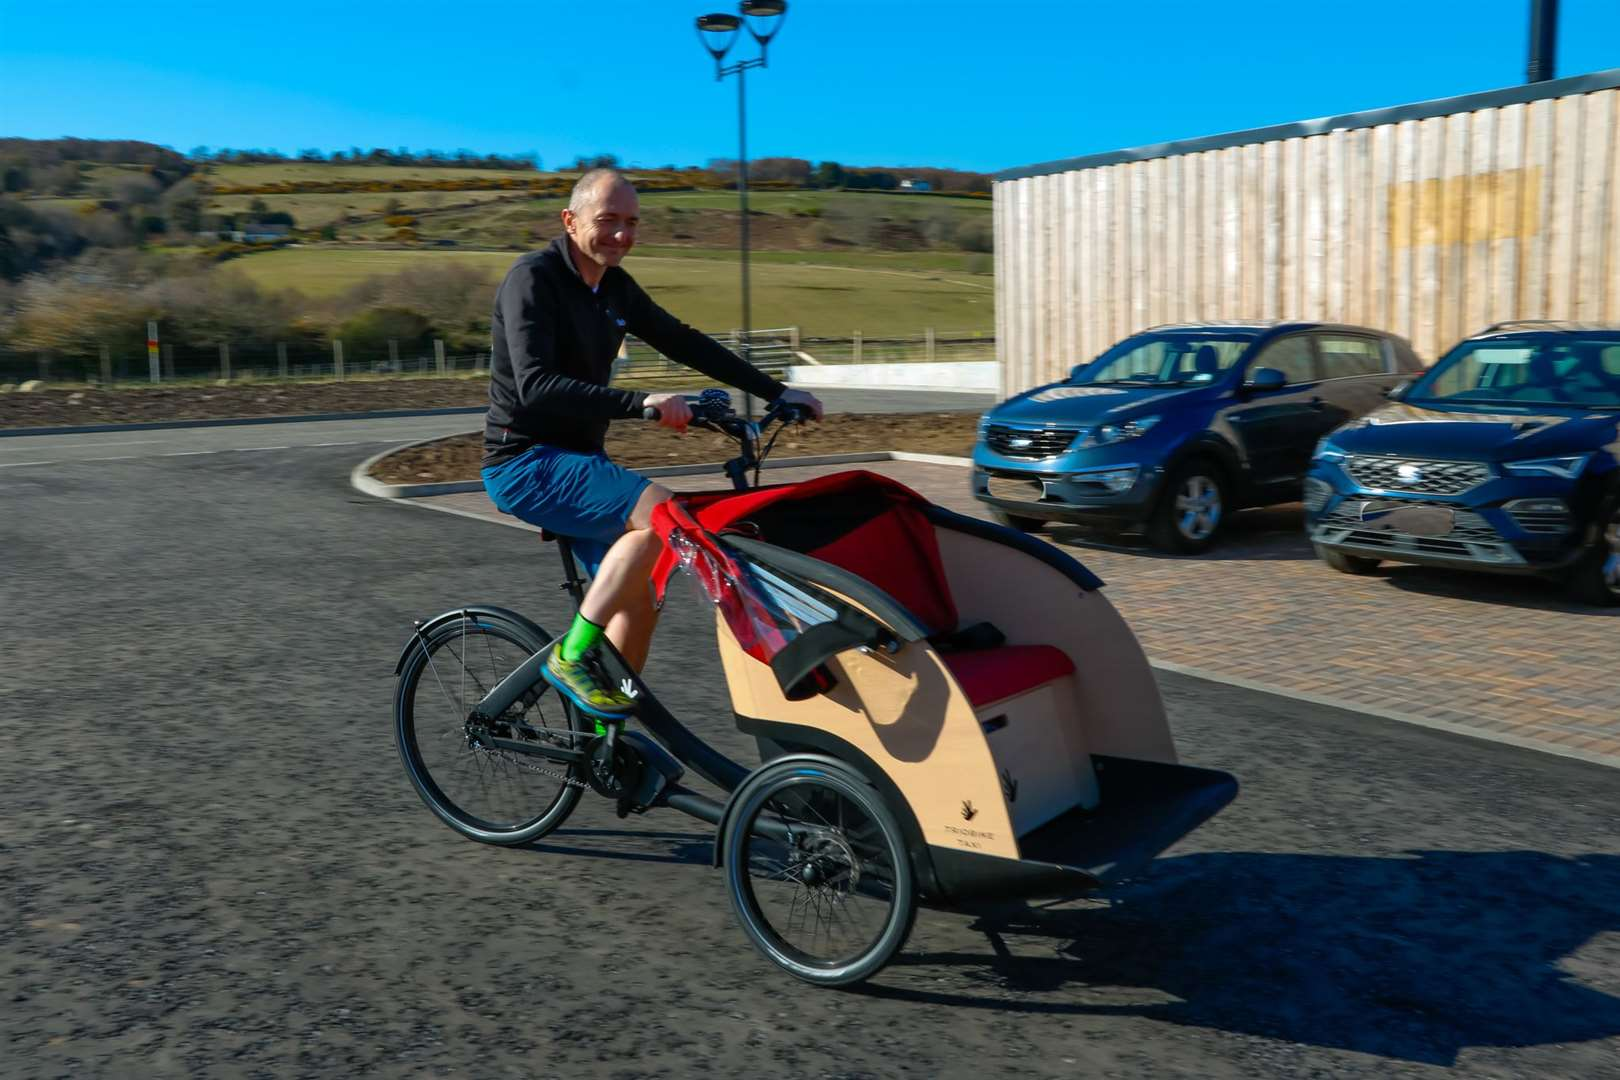 Alan McCaffrey, Fortrose & Rosemarkie chapter captain with Cycling Without Age Scotland, gives a trishaw demonstration